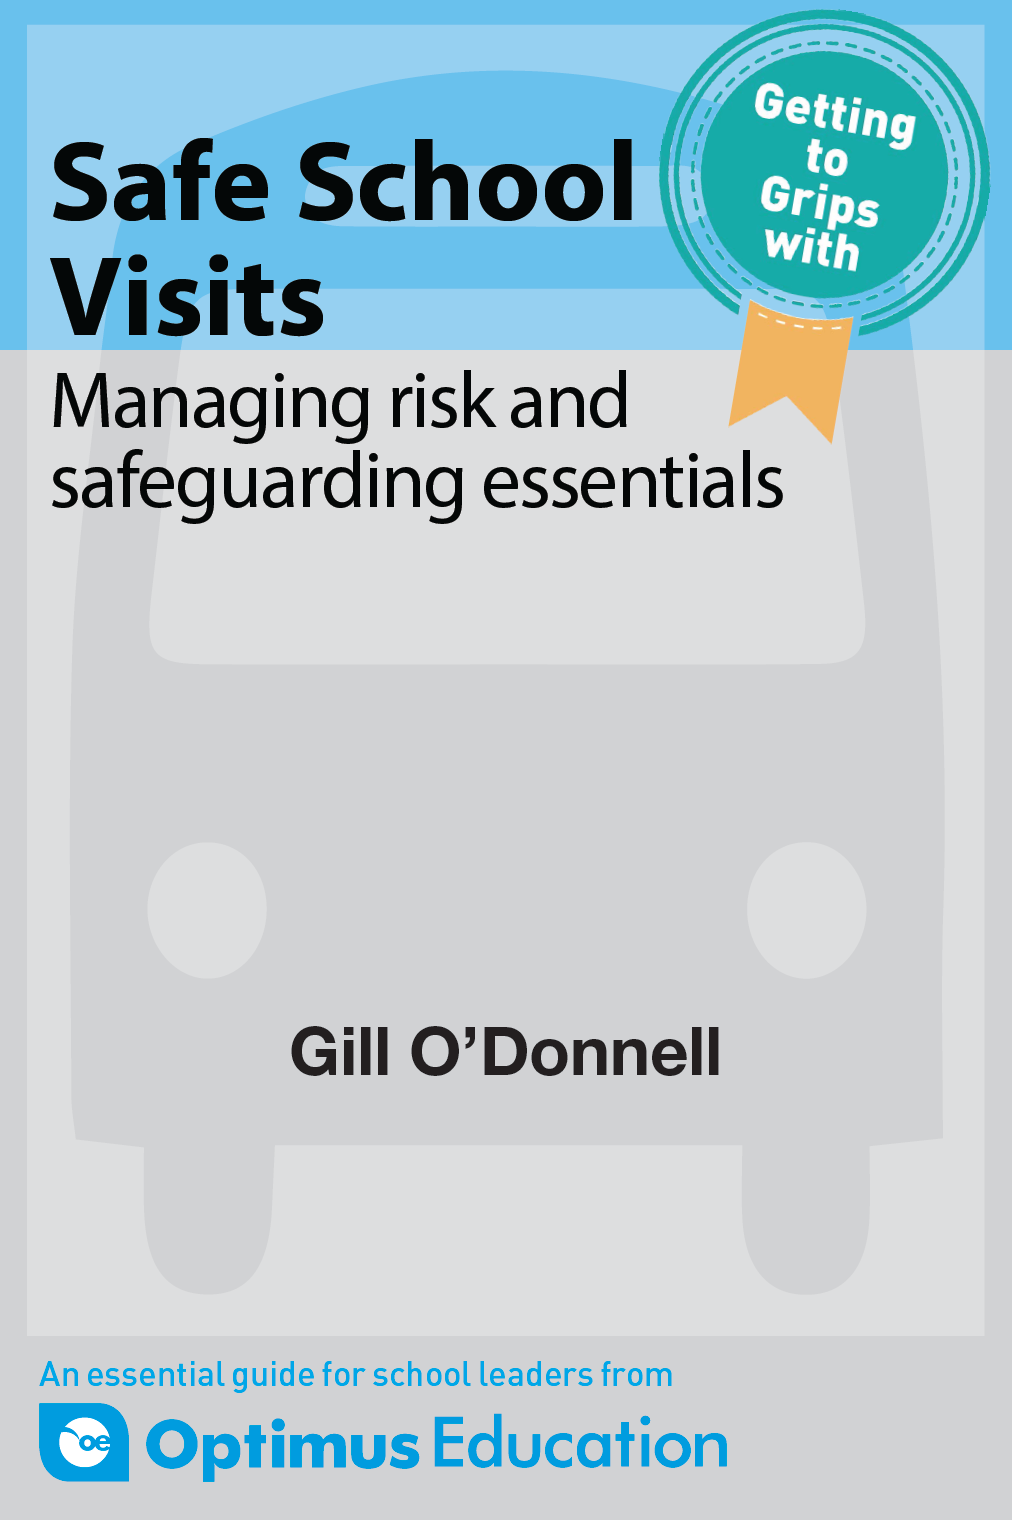 Safe School Visits: Managing risk and safeguarding essentials